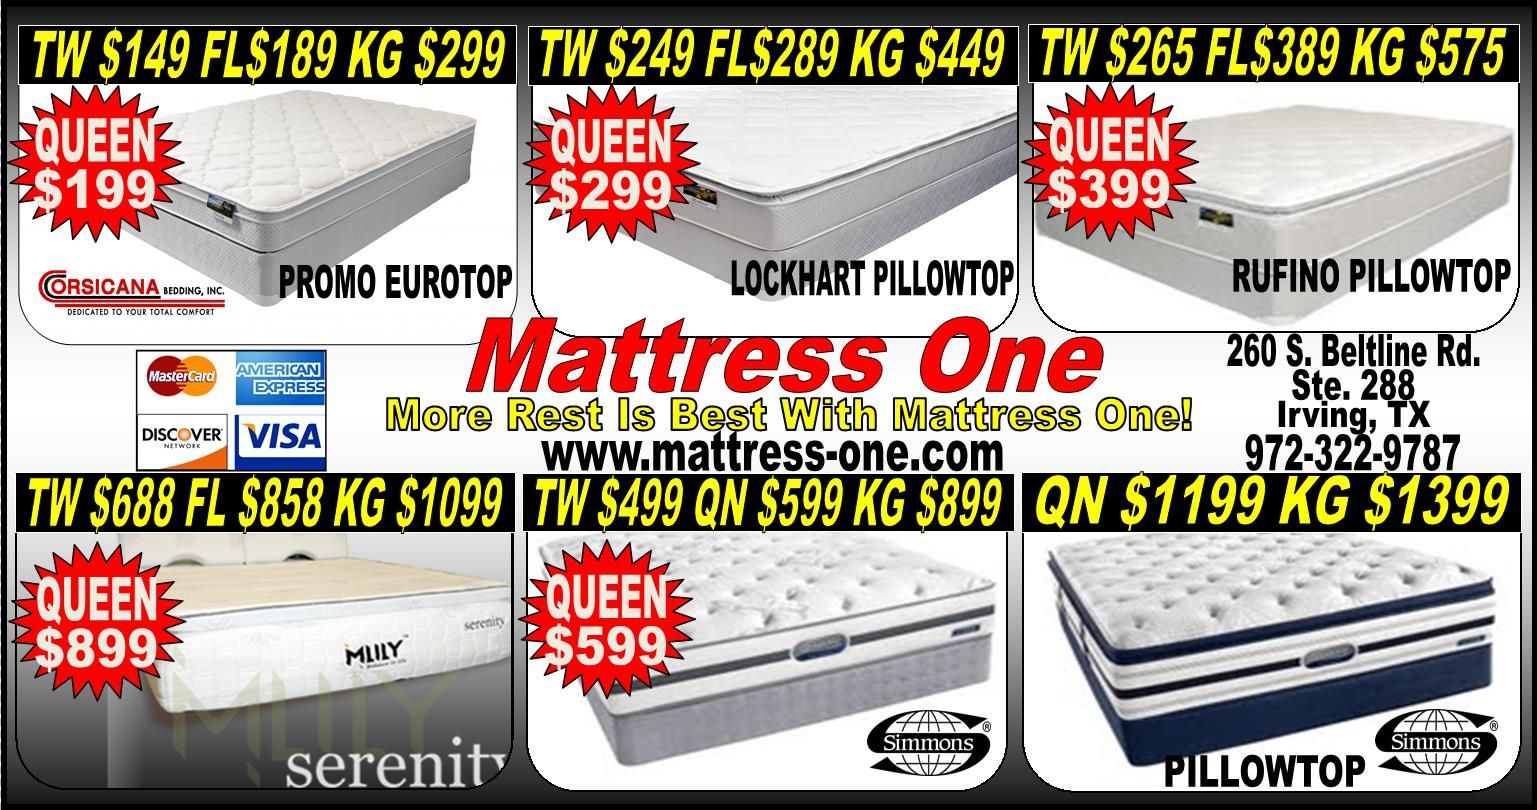 contact keith denton www mattress one com advertising direct